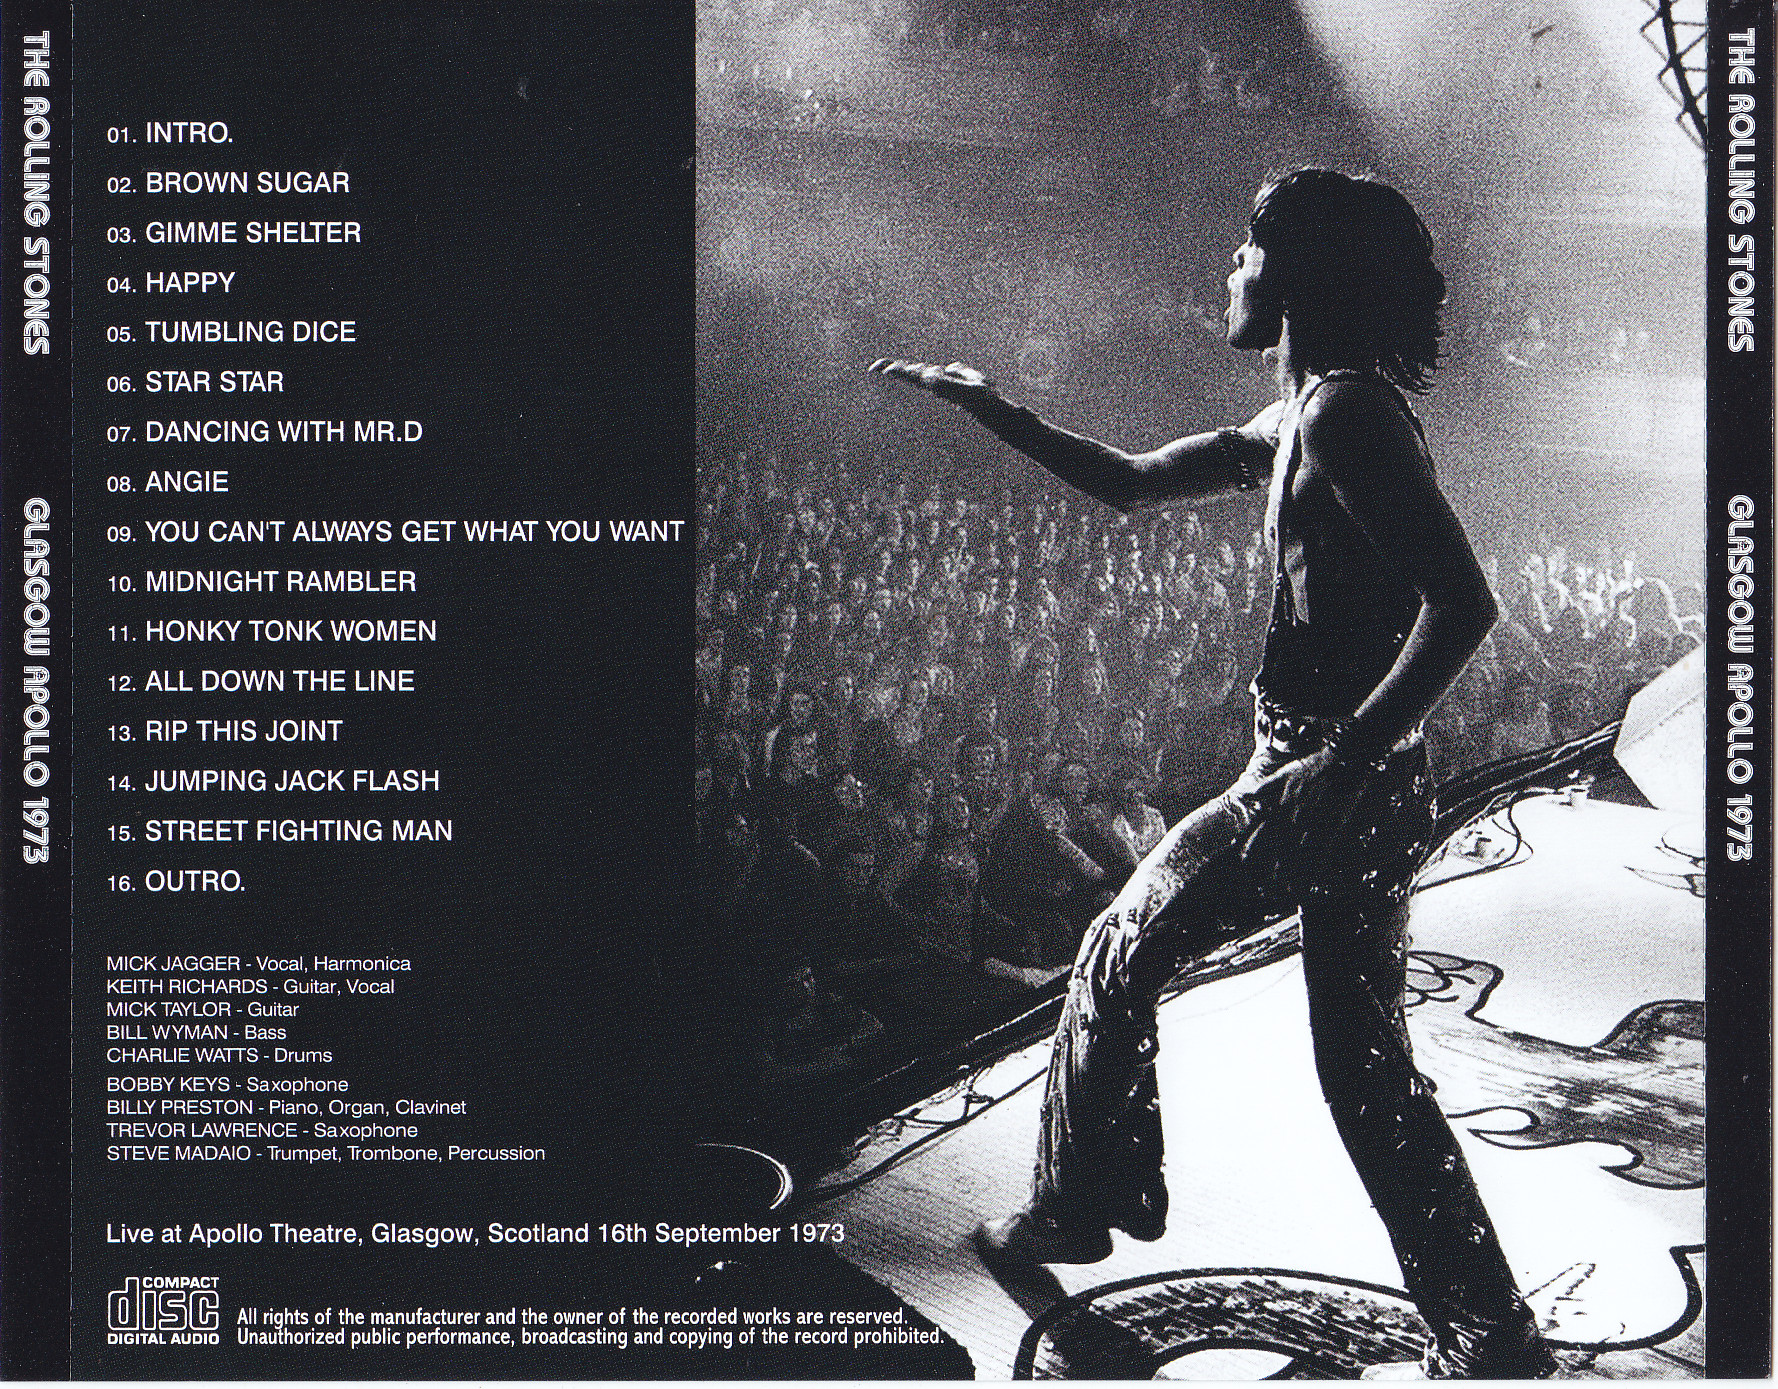 Rolling Stones The Glasgow Apollo 1973 1cd Discjapan